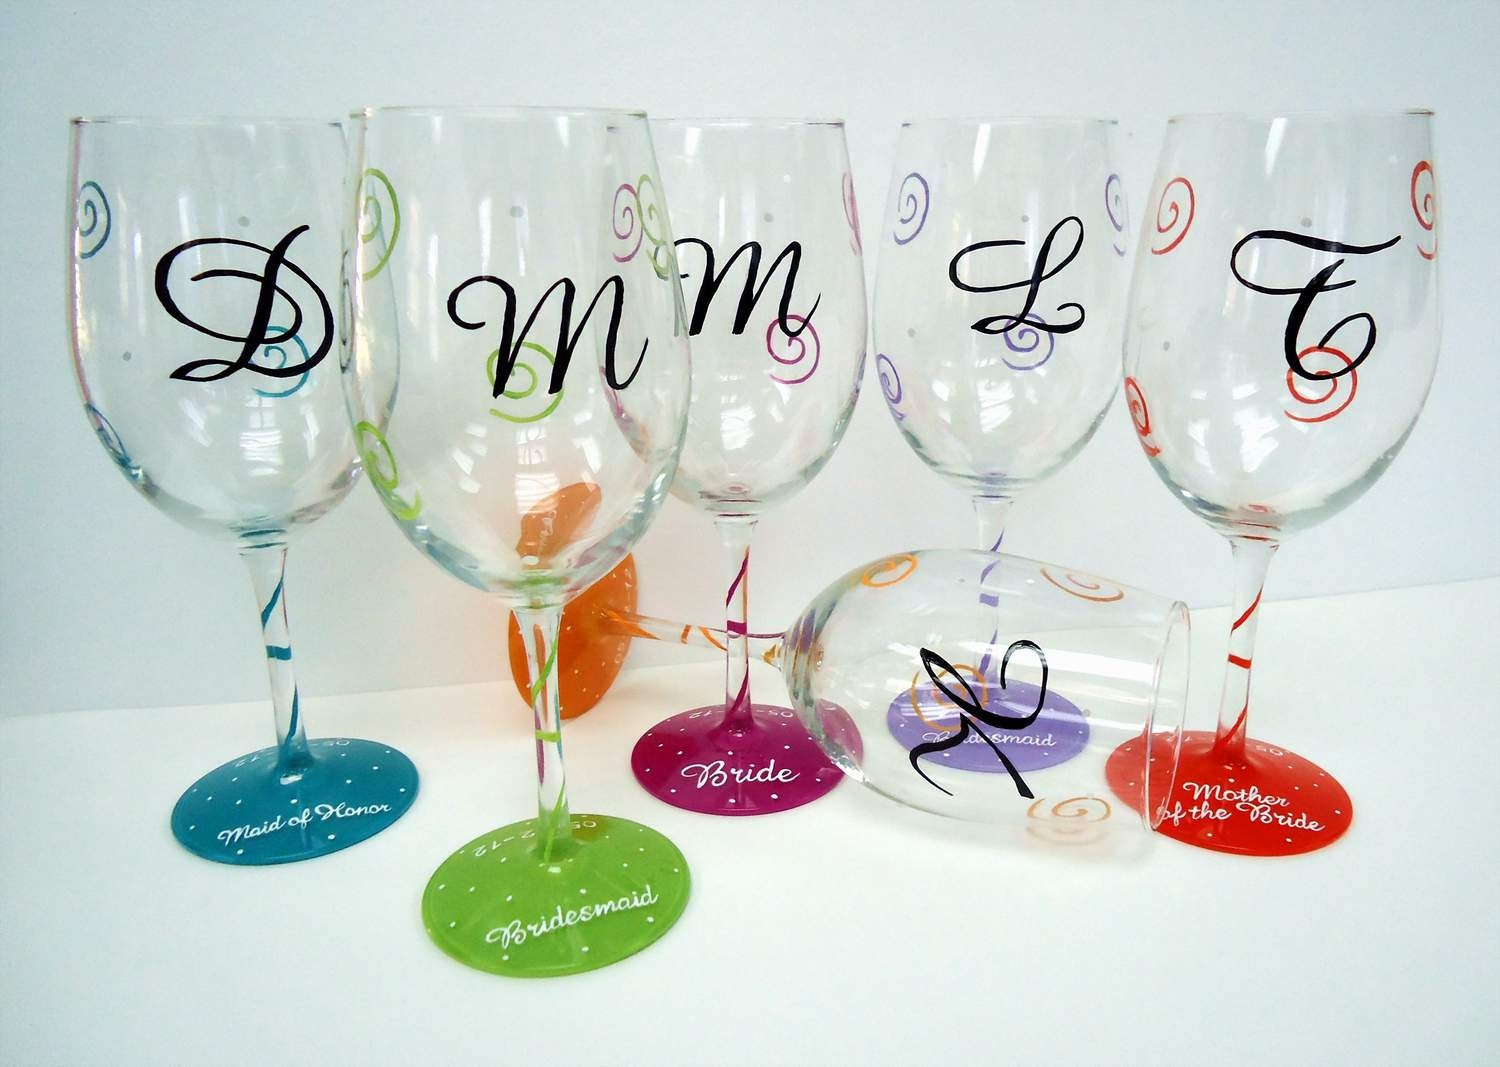 Wine Glass Design Ideas images of wine glass painting bybeccawordpresscompattern hand painted wine Zoom